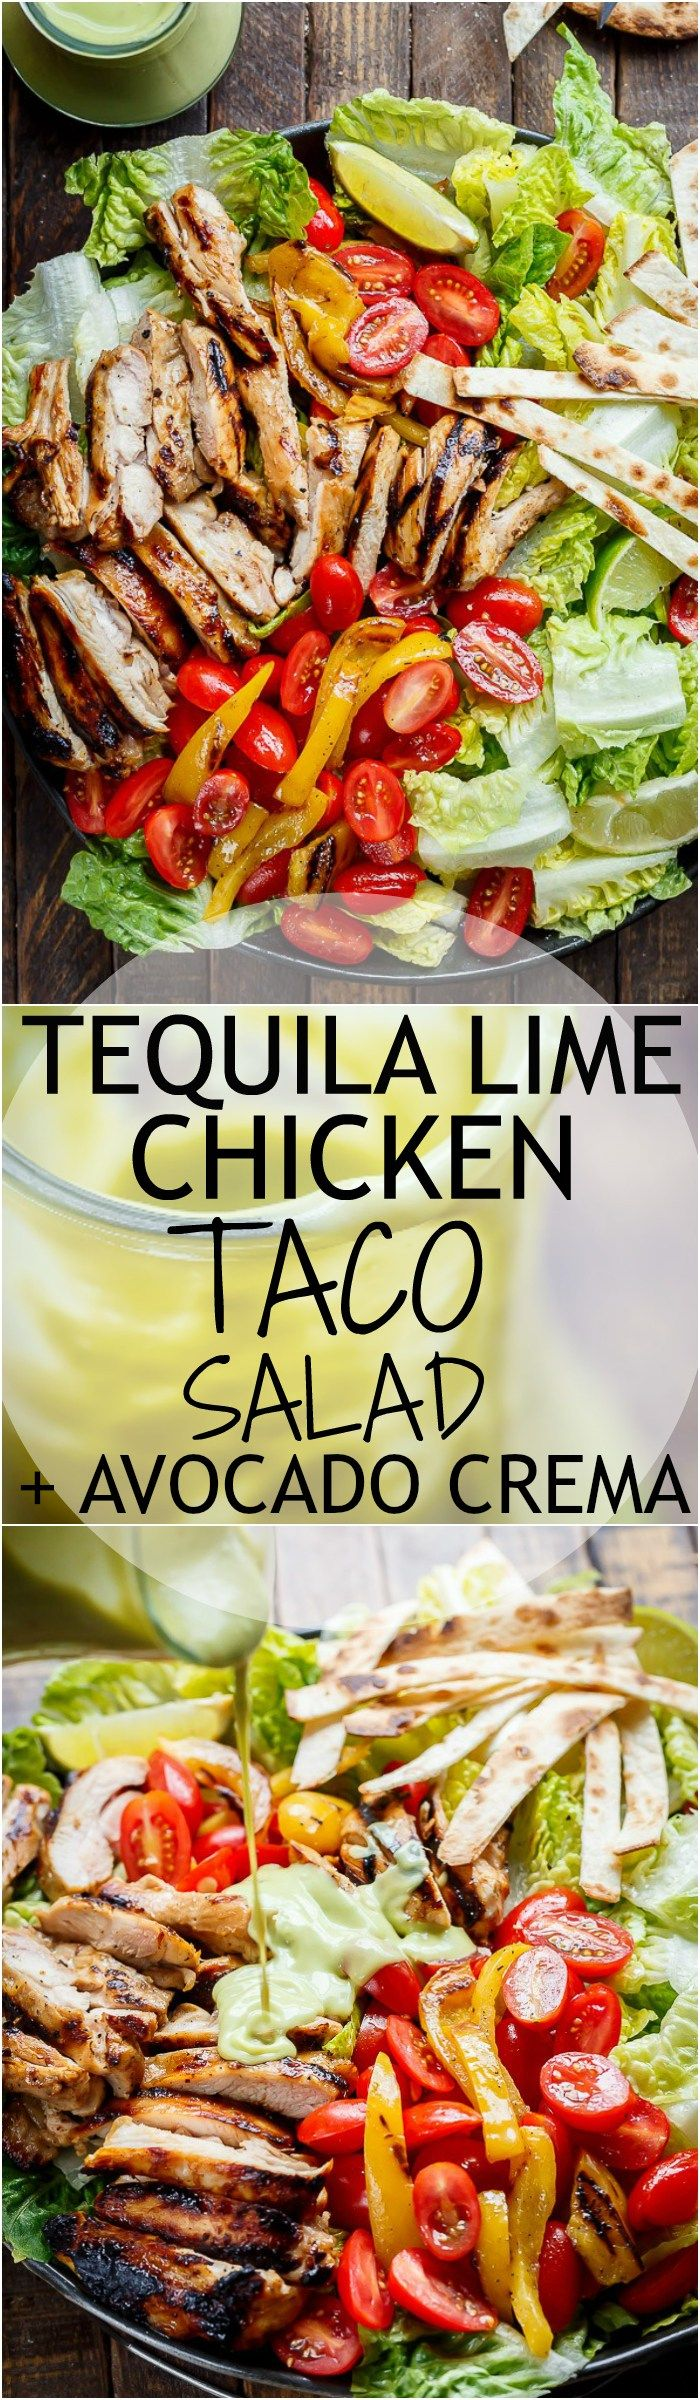 Tequila Lime Chicken Taco Salad with an Avocado Crema spiked with honey, lime and booze. Complete with tortilla strips, have a chicken taco in a salad! | http://cafedelites.com